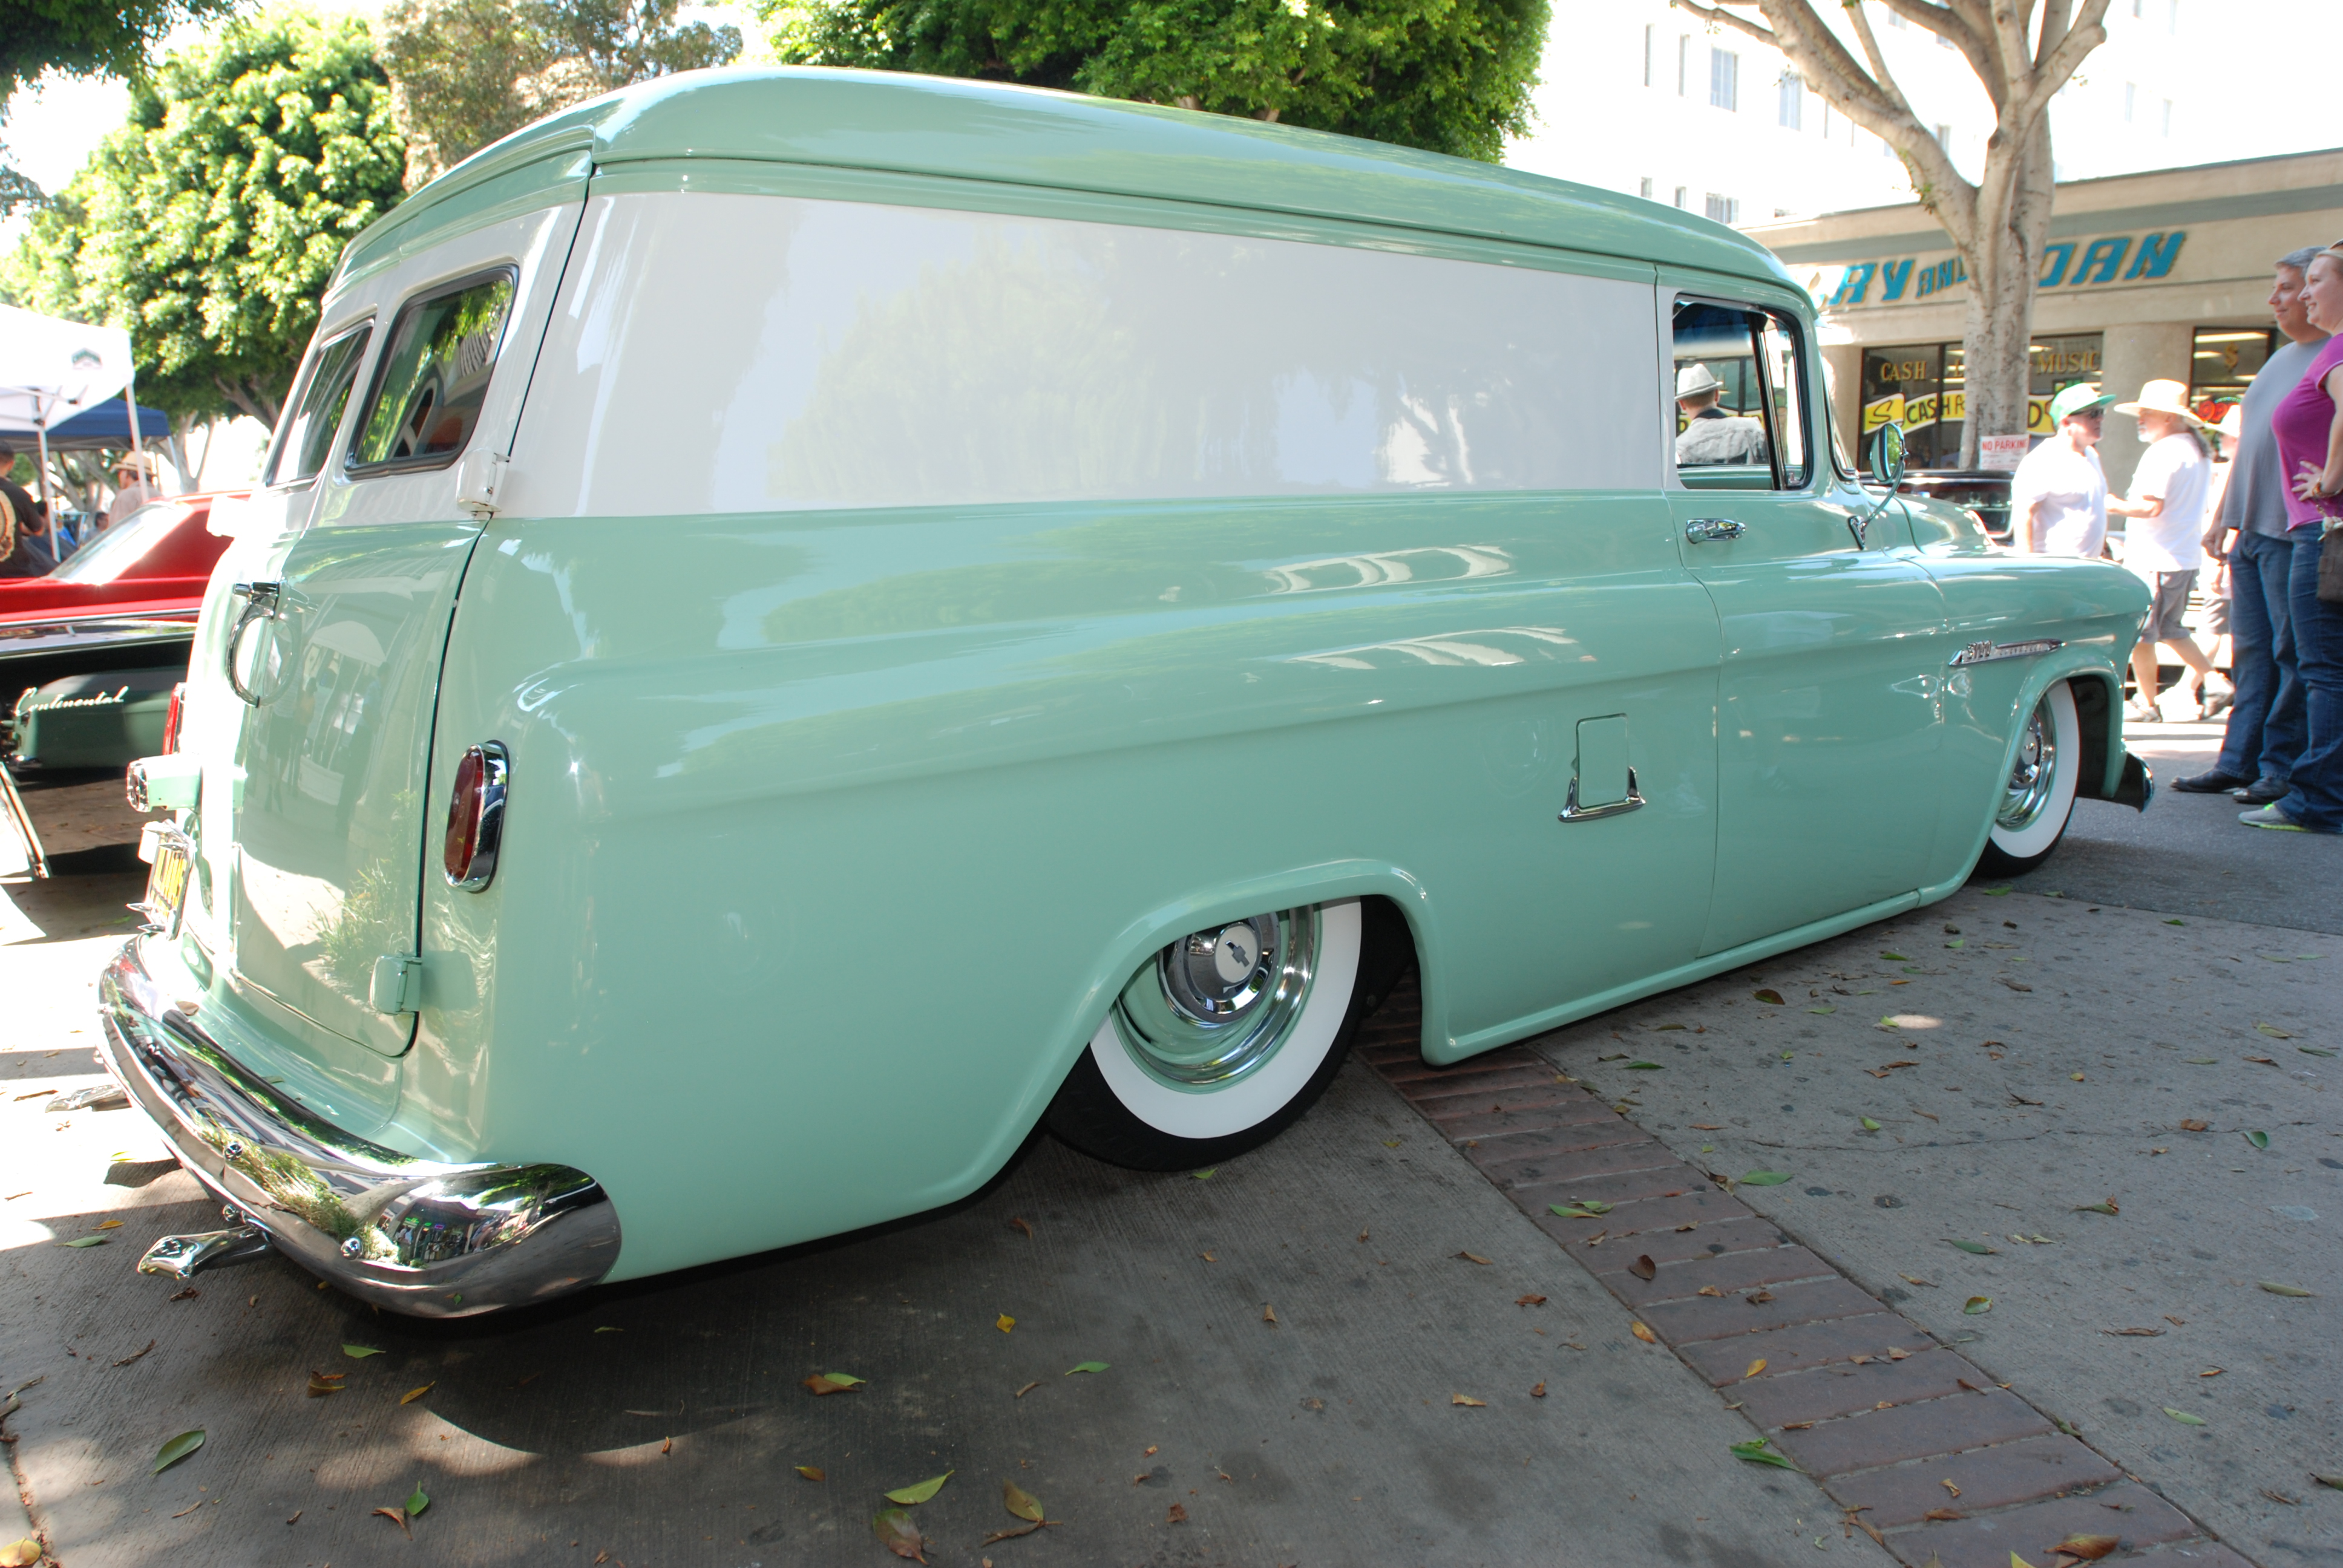 1950 Ford chop top coupe | digitaldtour